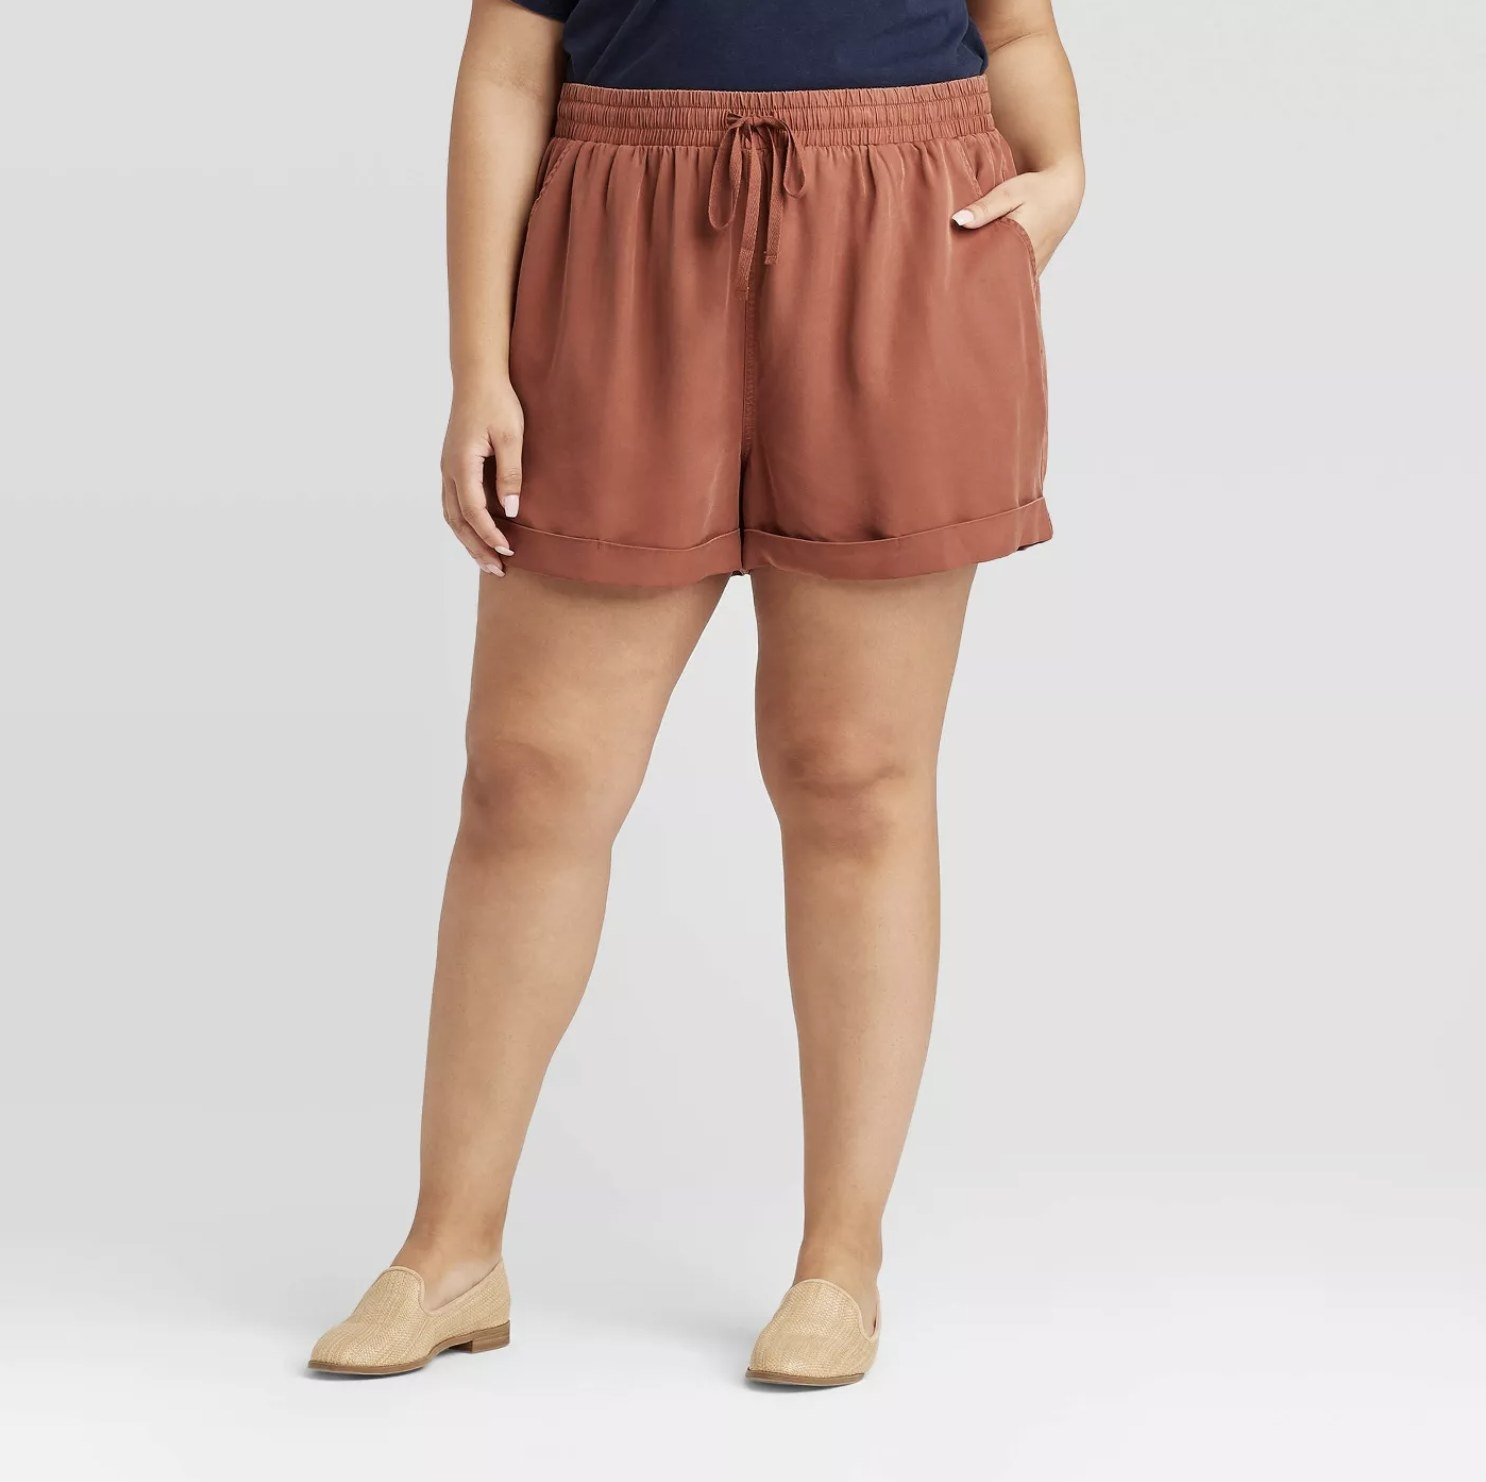 Model is wearing rust mid rise shorts with an elastic tie waist and cream loafers